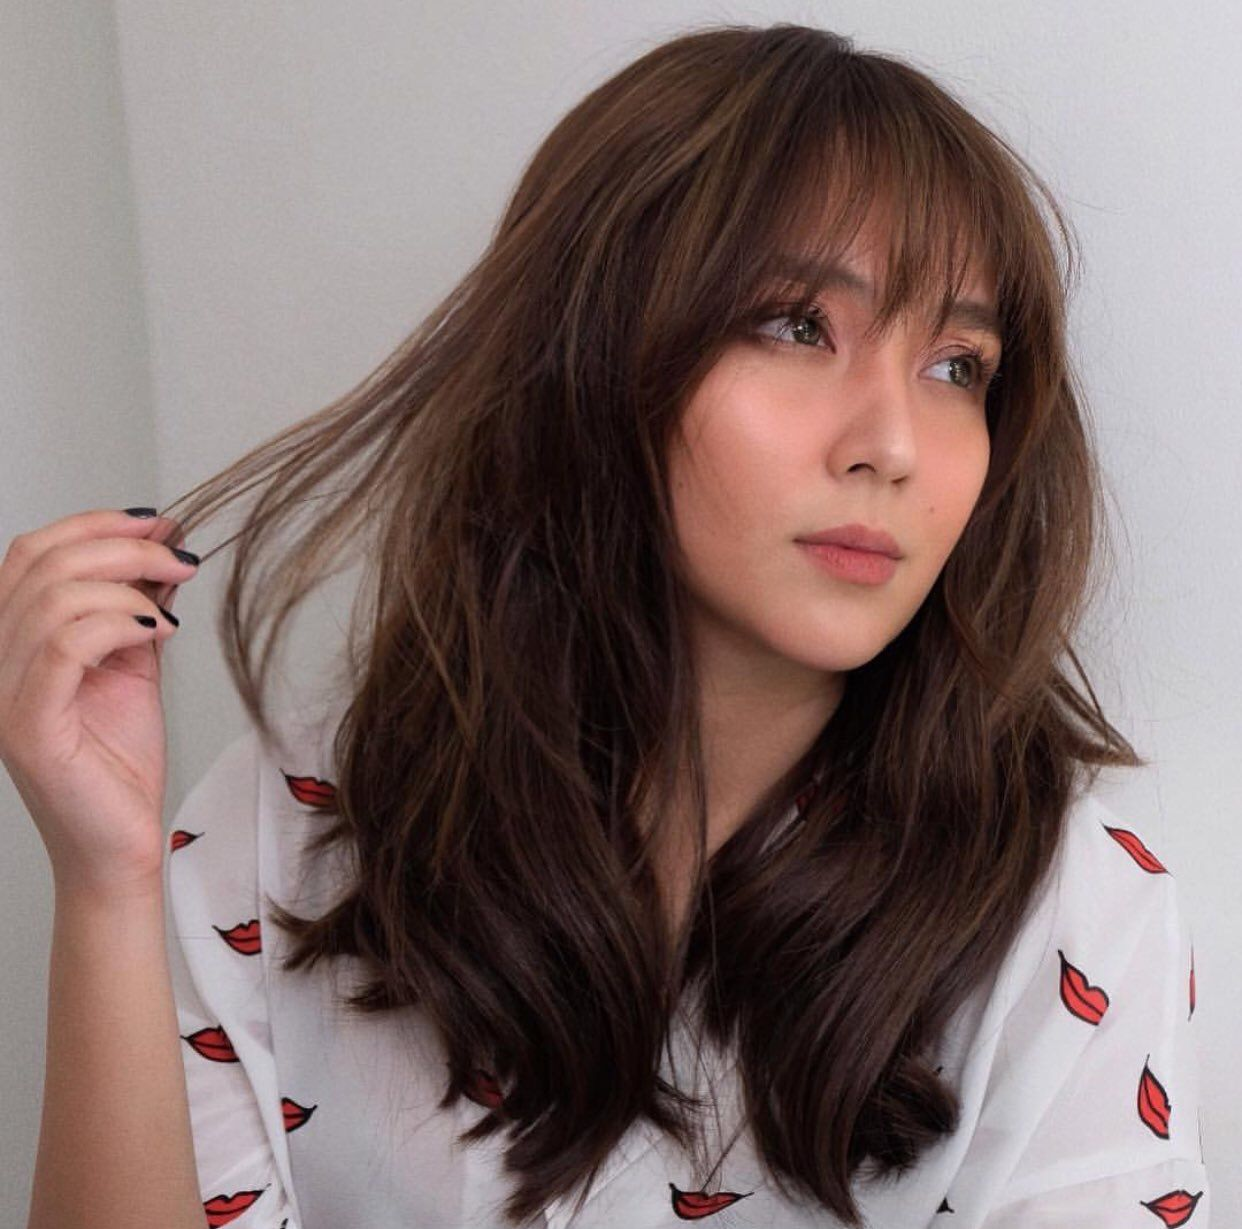 Wattpad Aprudayt Twitter Dreamerszx Wp Filipino Author Kathniel Fan Follow For Update Hair Color For Morena Skin Hair Color For Morena Hair Color Names